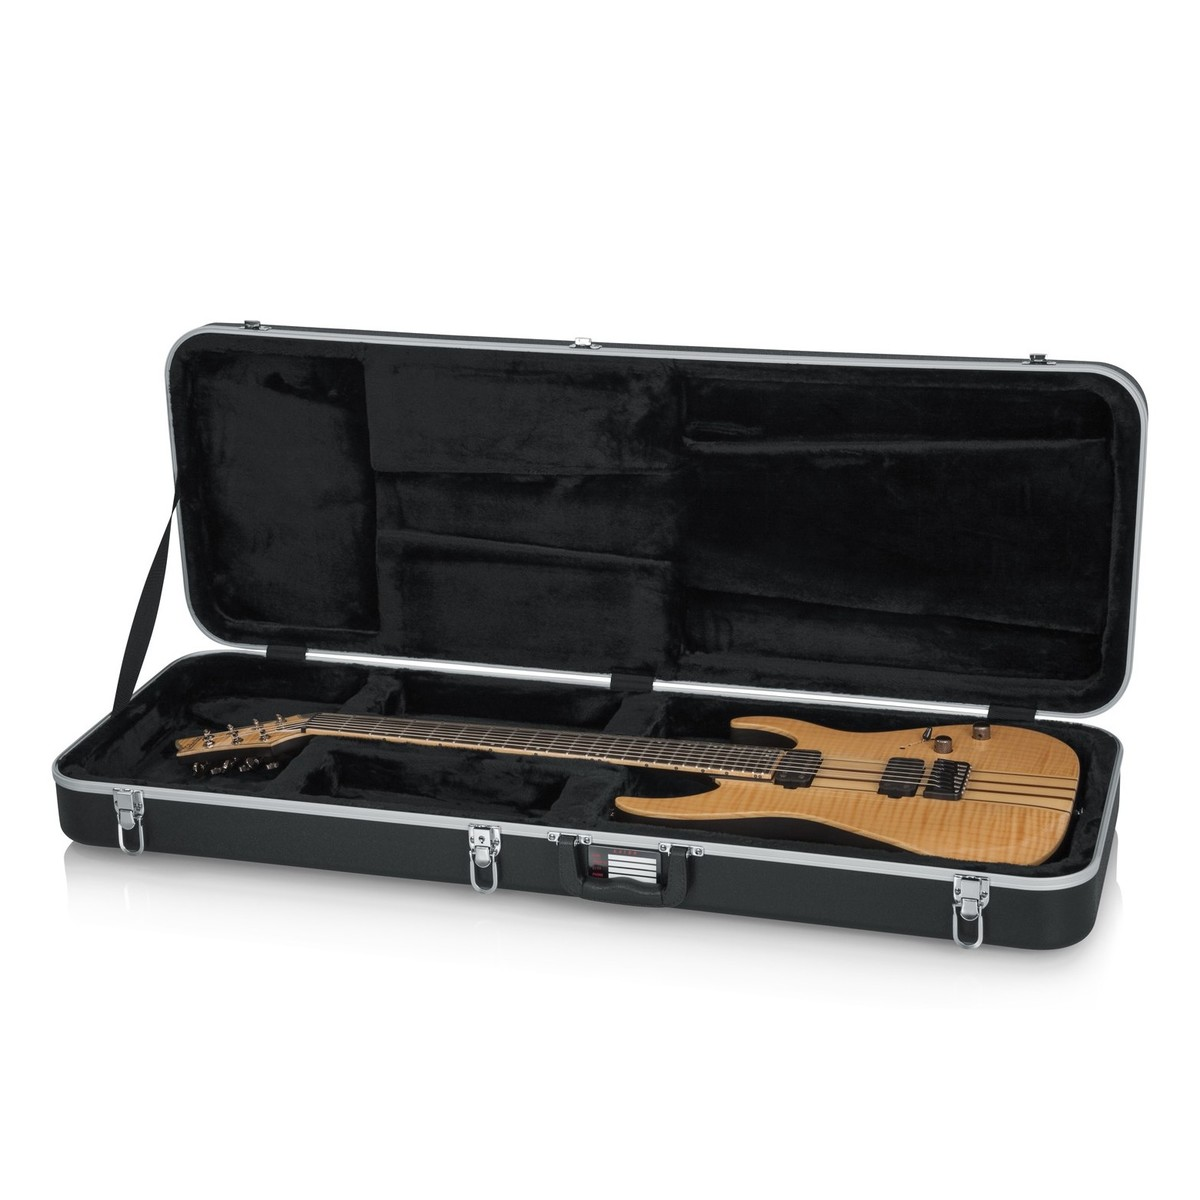 gator gc elec xl deluxe moulded case for electric guitars extra long b stock at gear4music. Black Bedroom Furniture Sets. Home Design Ideas